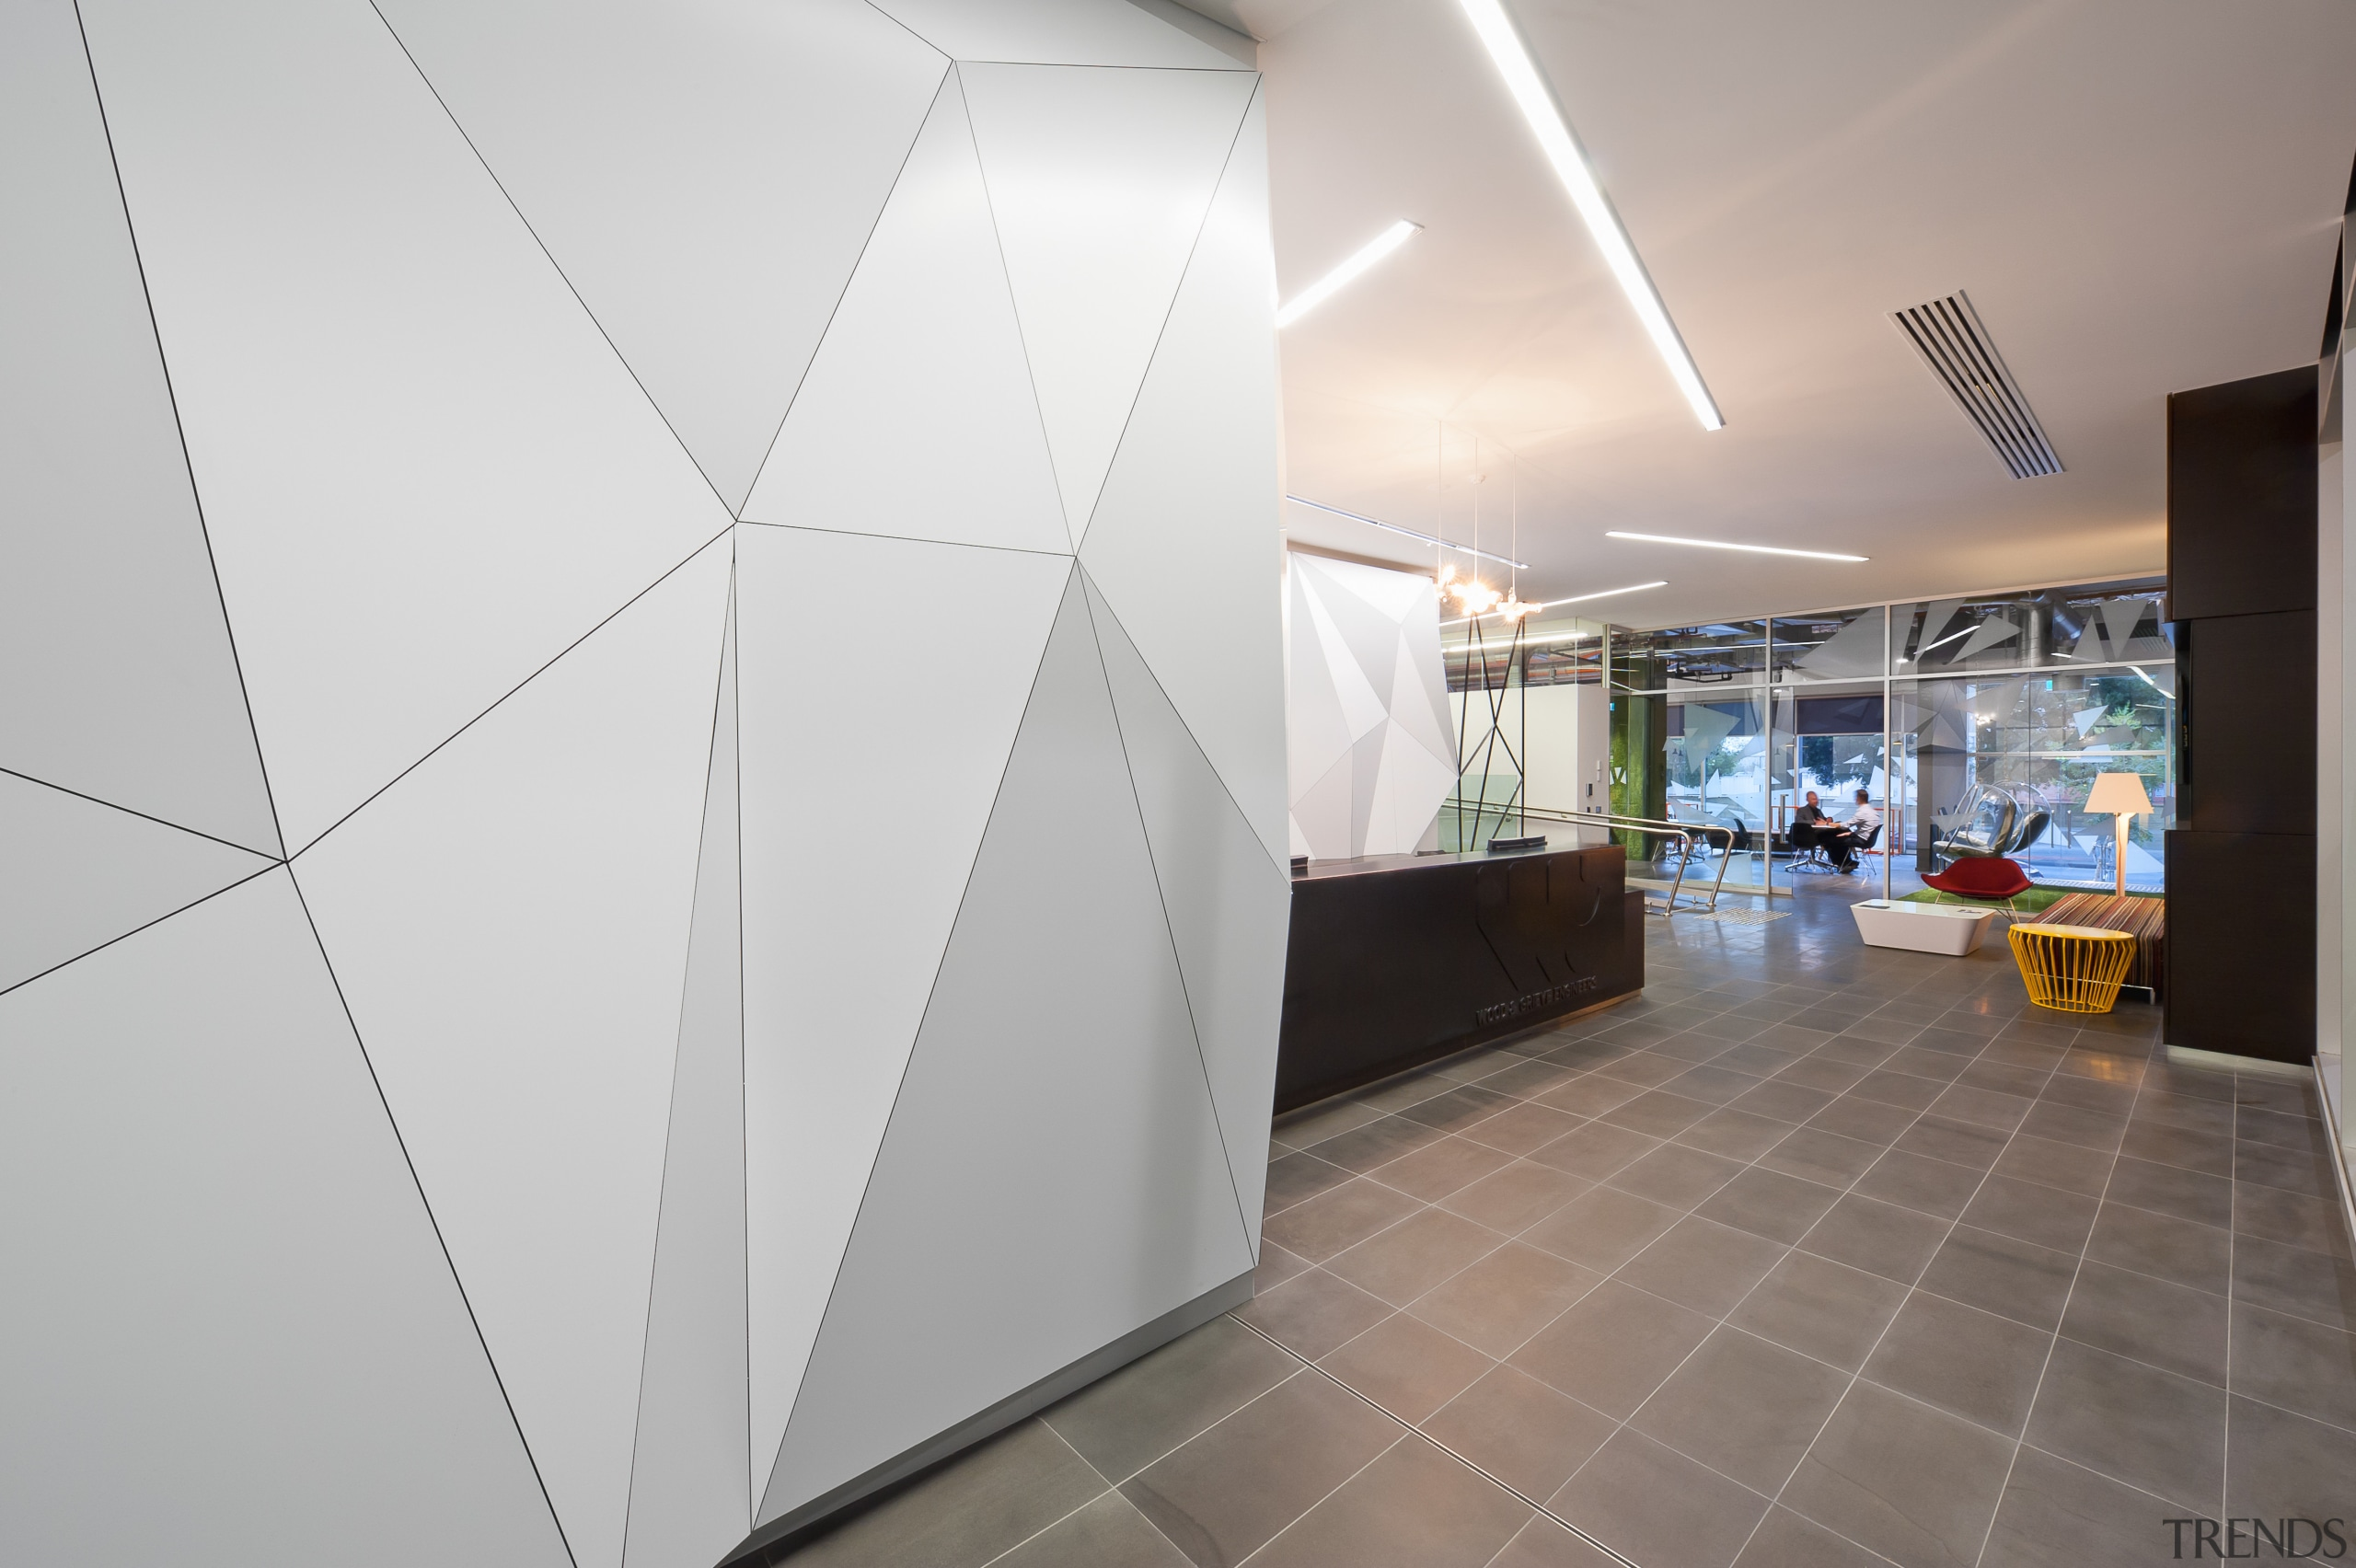 A multifaceted facade behind the reception desk of architecture, ceiling, daylighting, floor, interior design, product design, gray